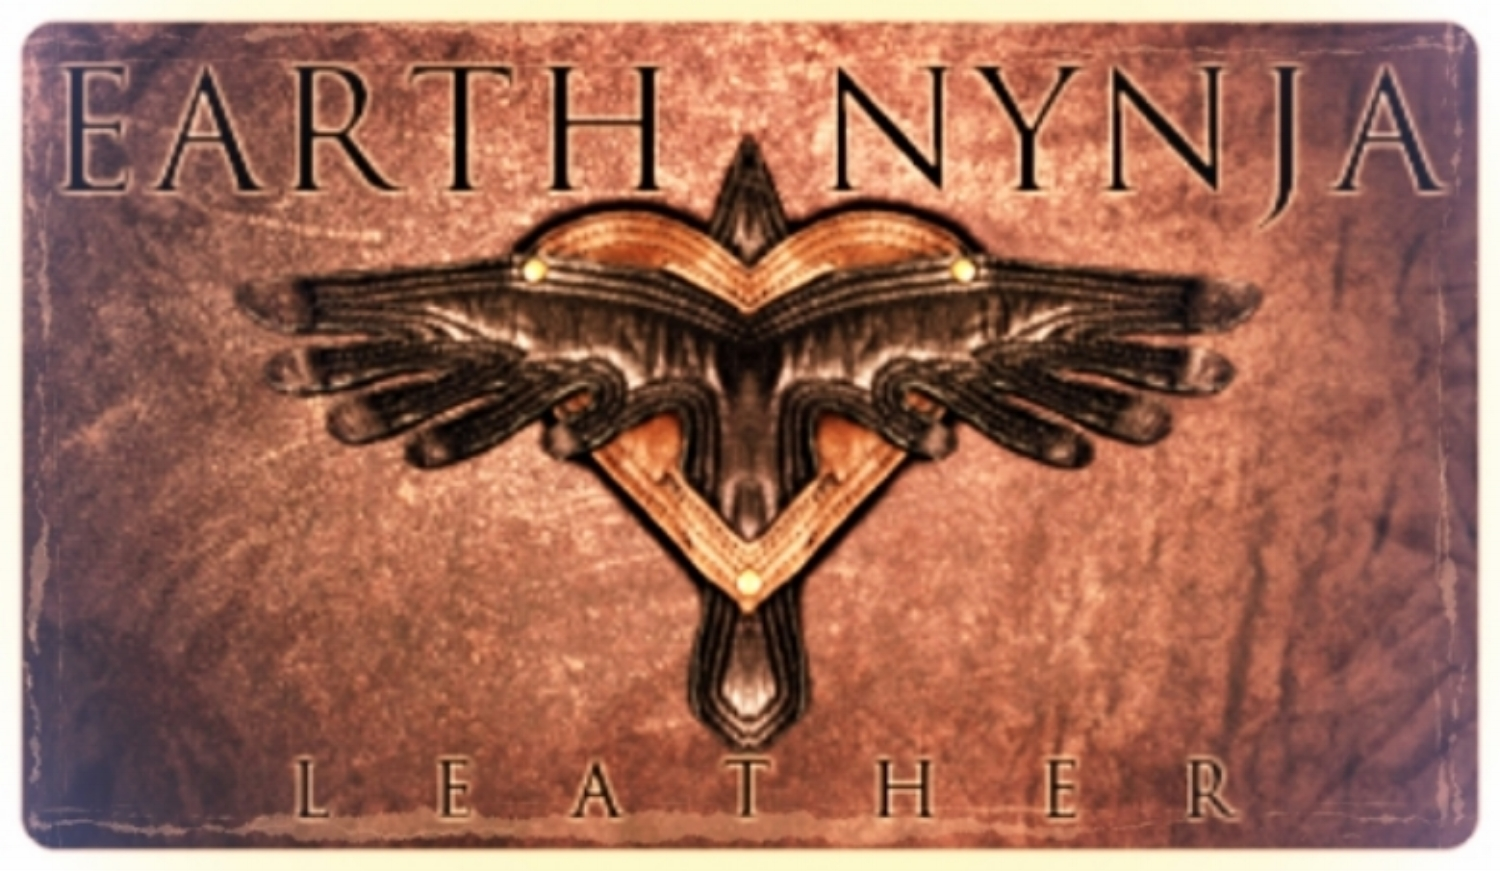 Earth Nynja Leather